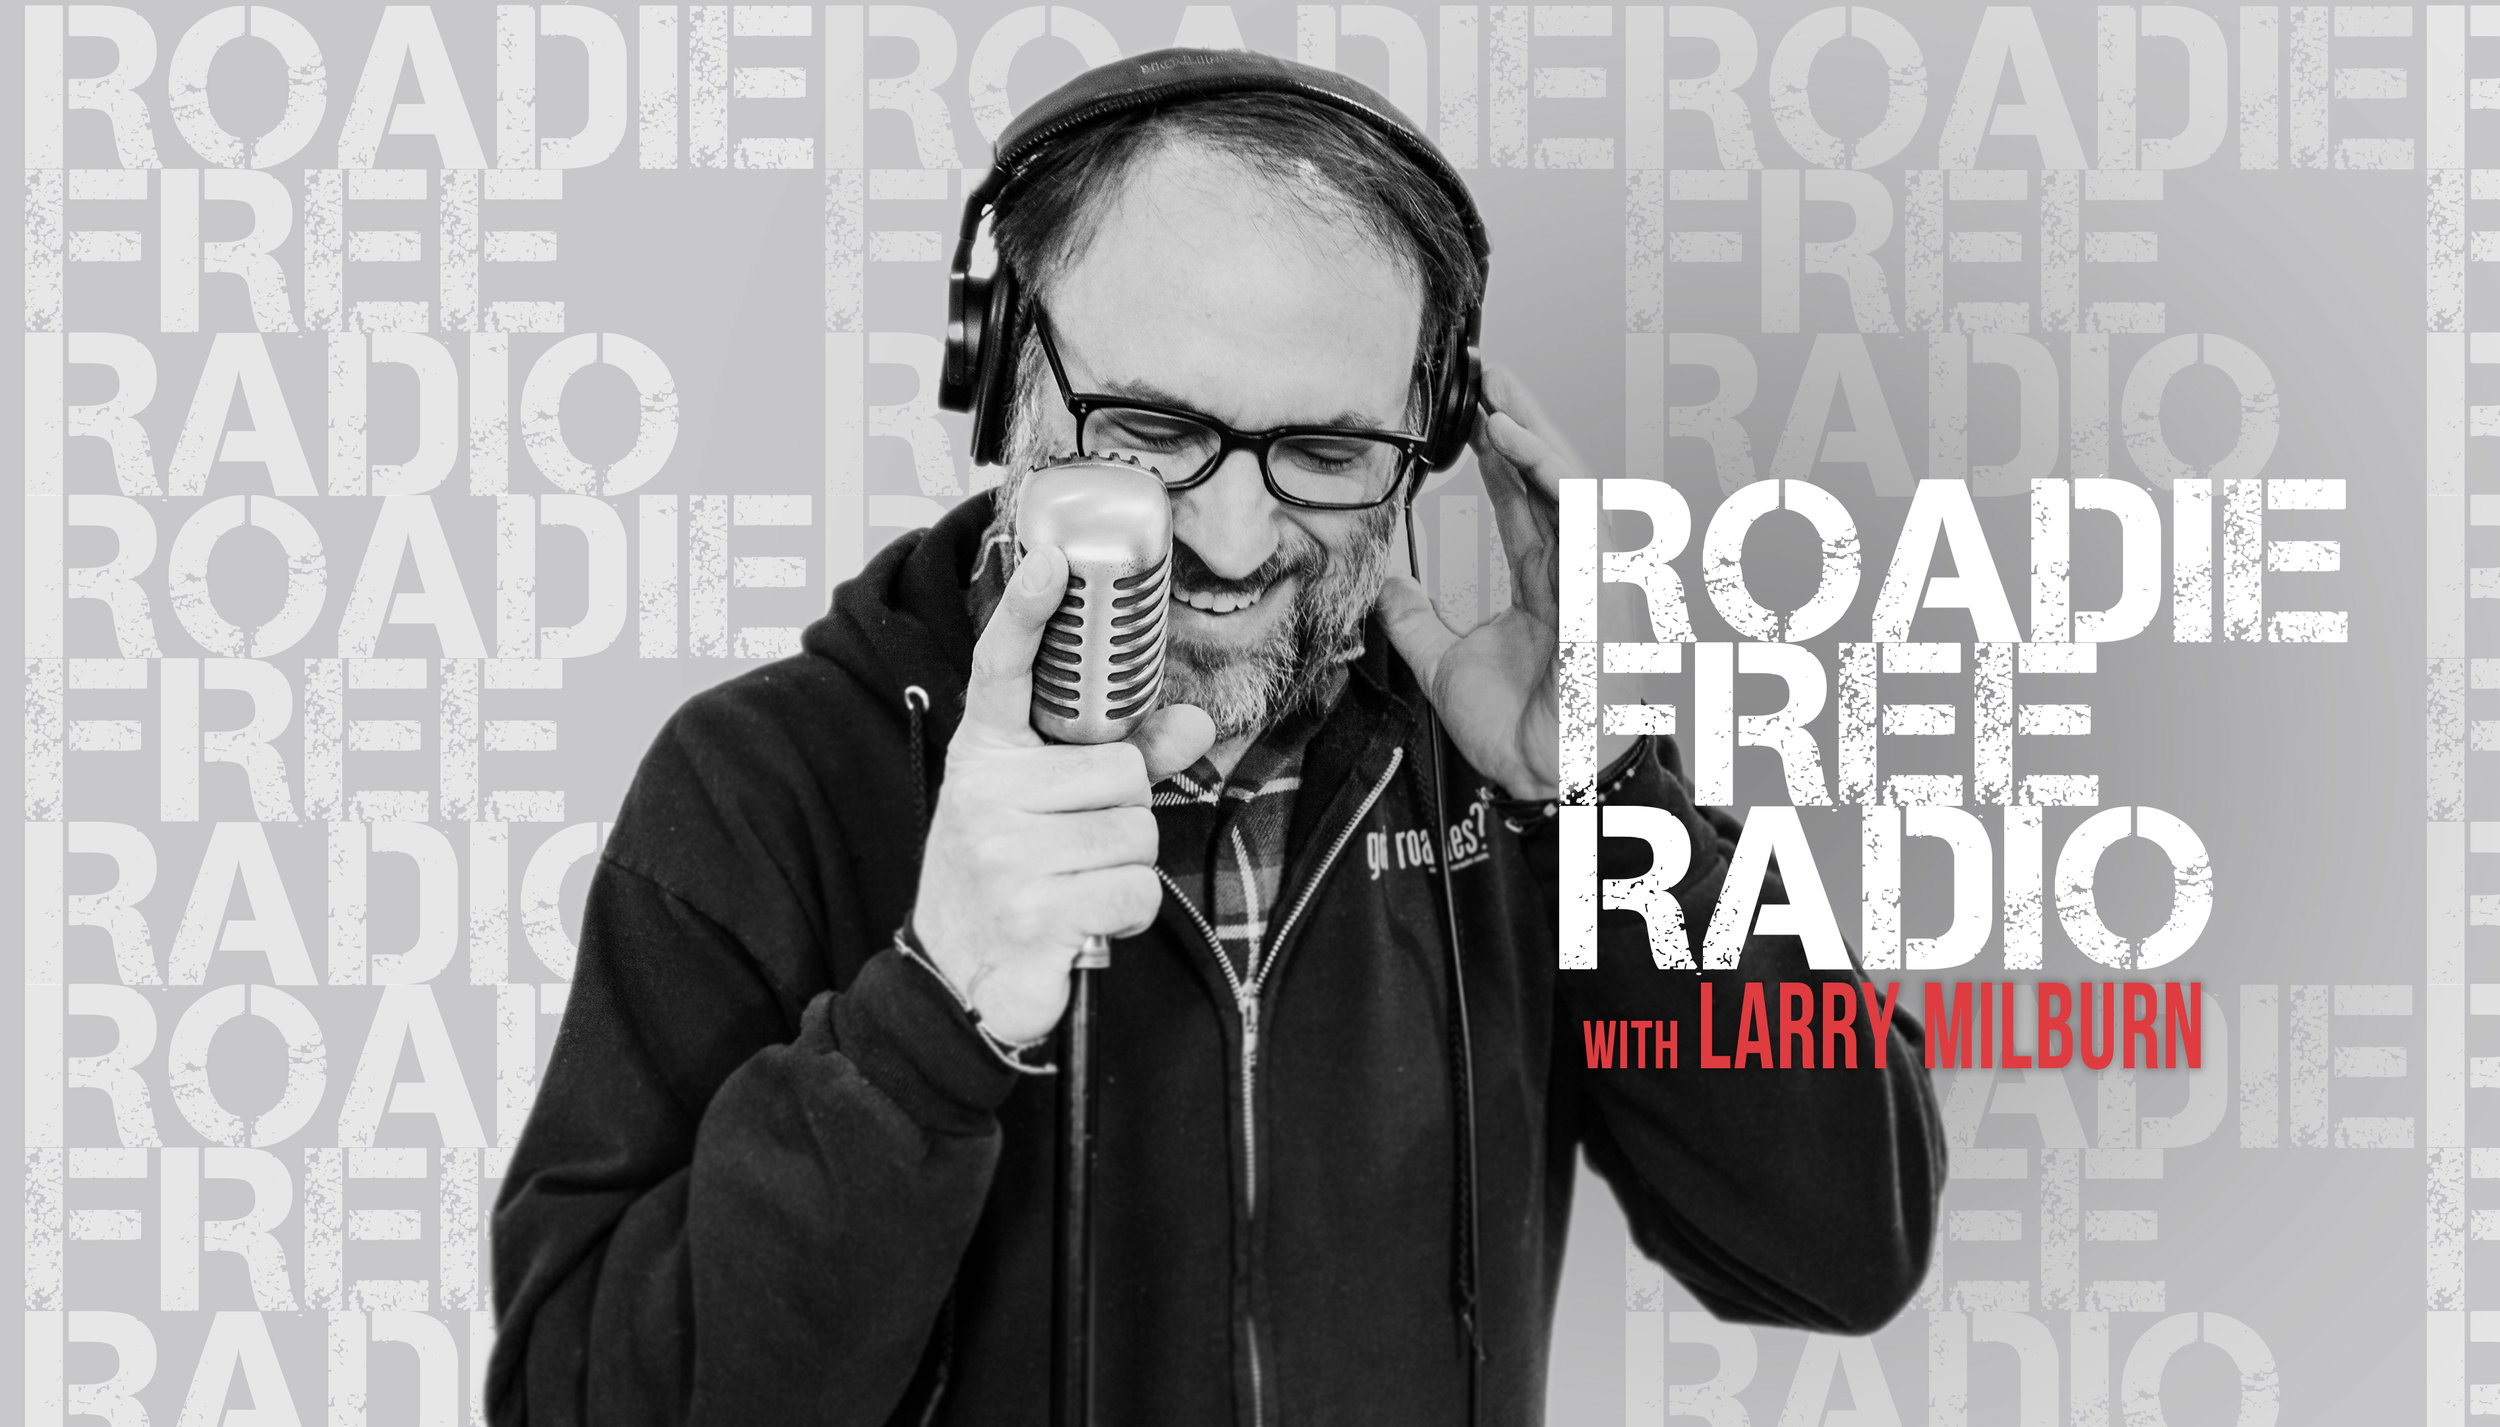 PODCAST - Website, Photo, Video, Graphics.ROADIE FREE RADIO takes you behind the scenes of the music industry interviewing pioneers in sound engineering, guitar techs,front of house innovators and entrepreneurs in music tech. For this particular project we shoot live interviews, cover behind the scenes of events, concerts and lectures all packaged up to create a community of listeners dedicated to the roadies that make music happen.